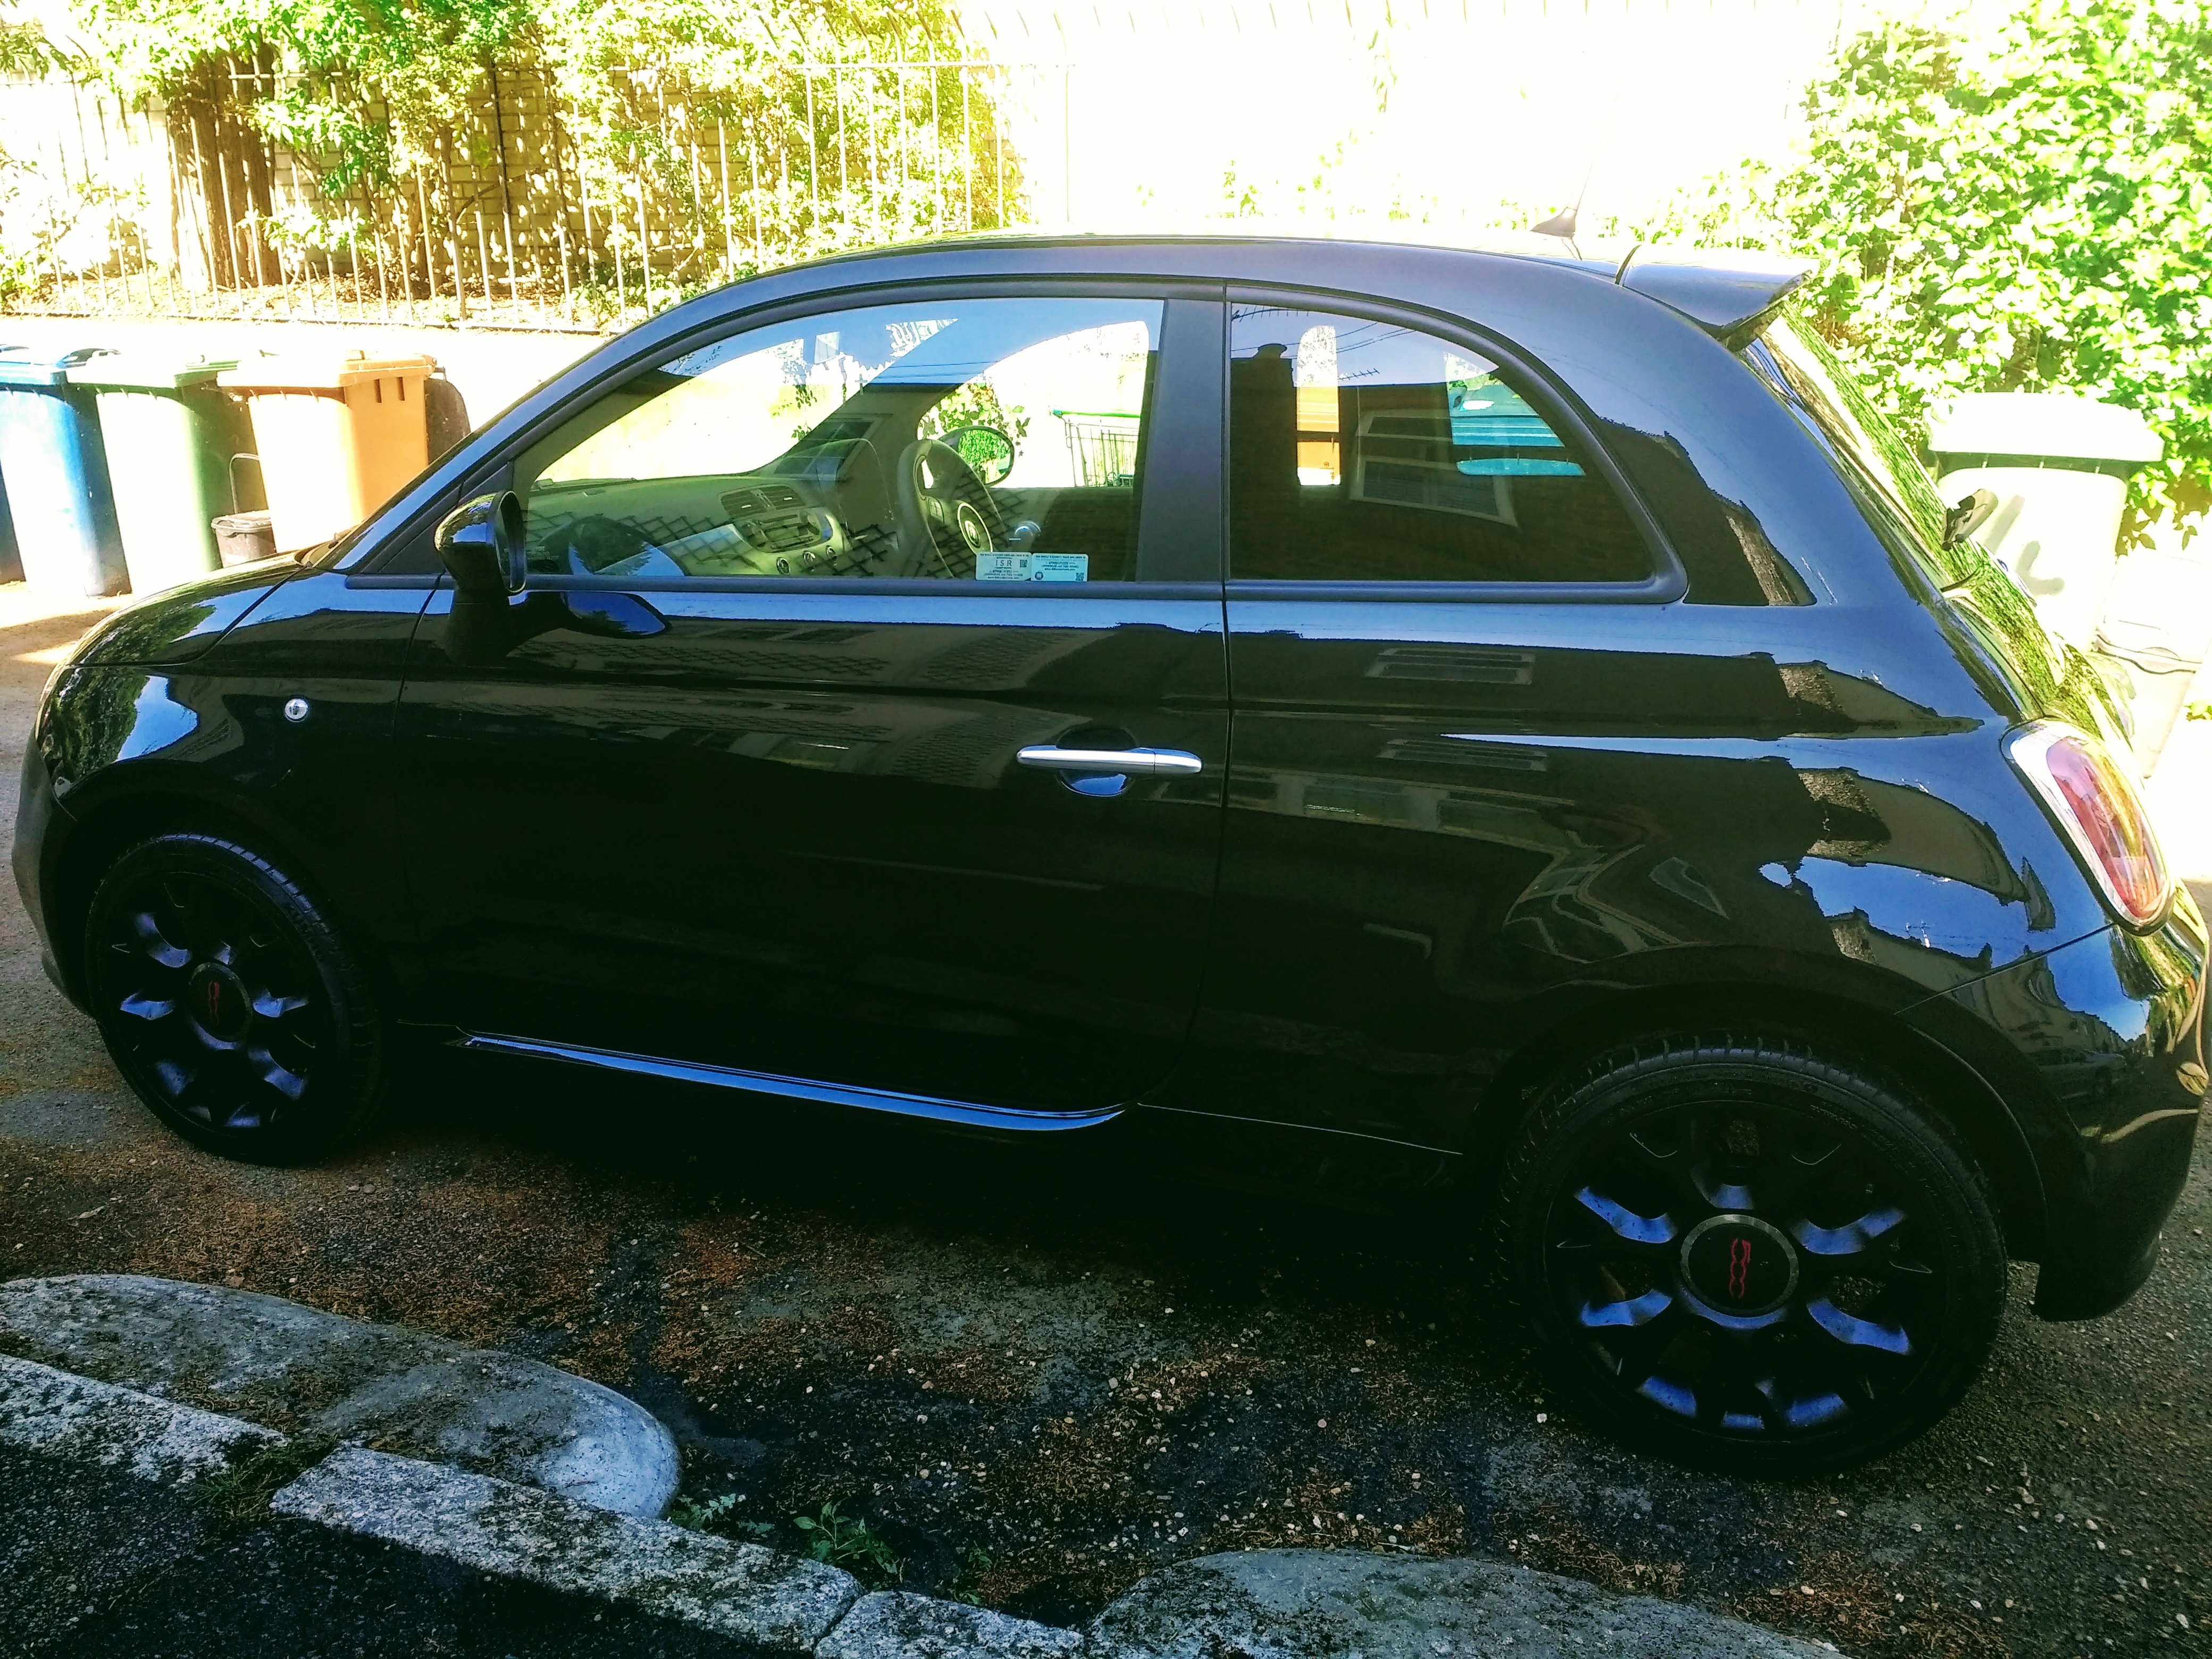 Click image for larger version  Name:Fiat 500.jpg Views:53 Size:3.07 MB ID:193804